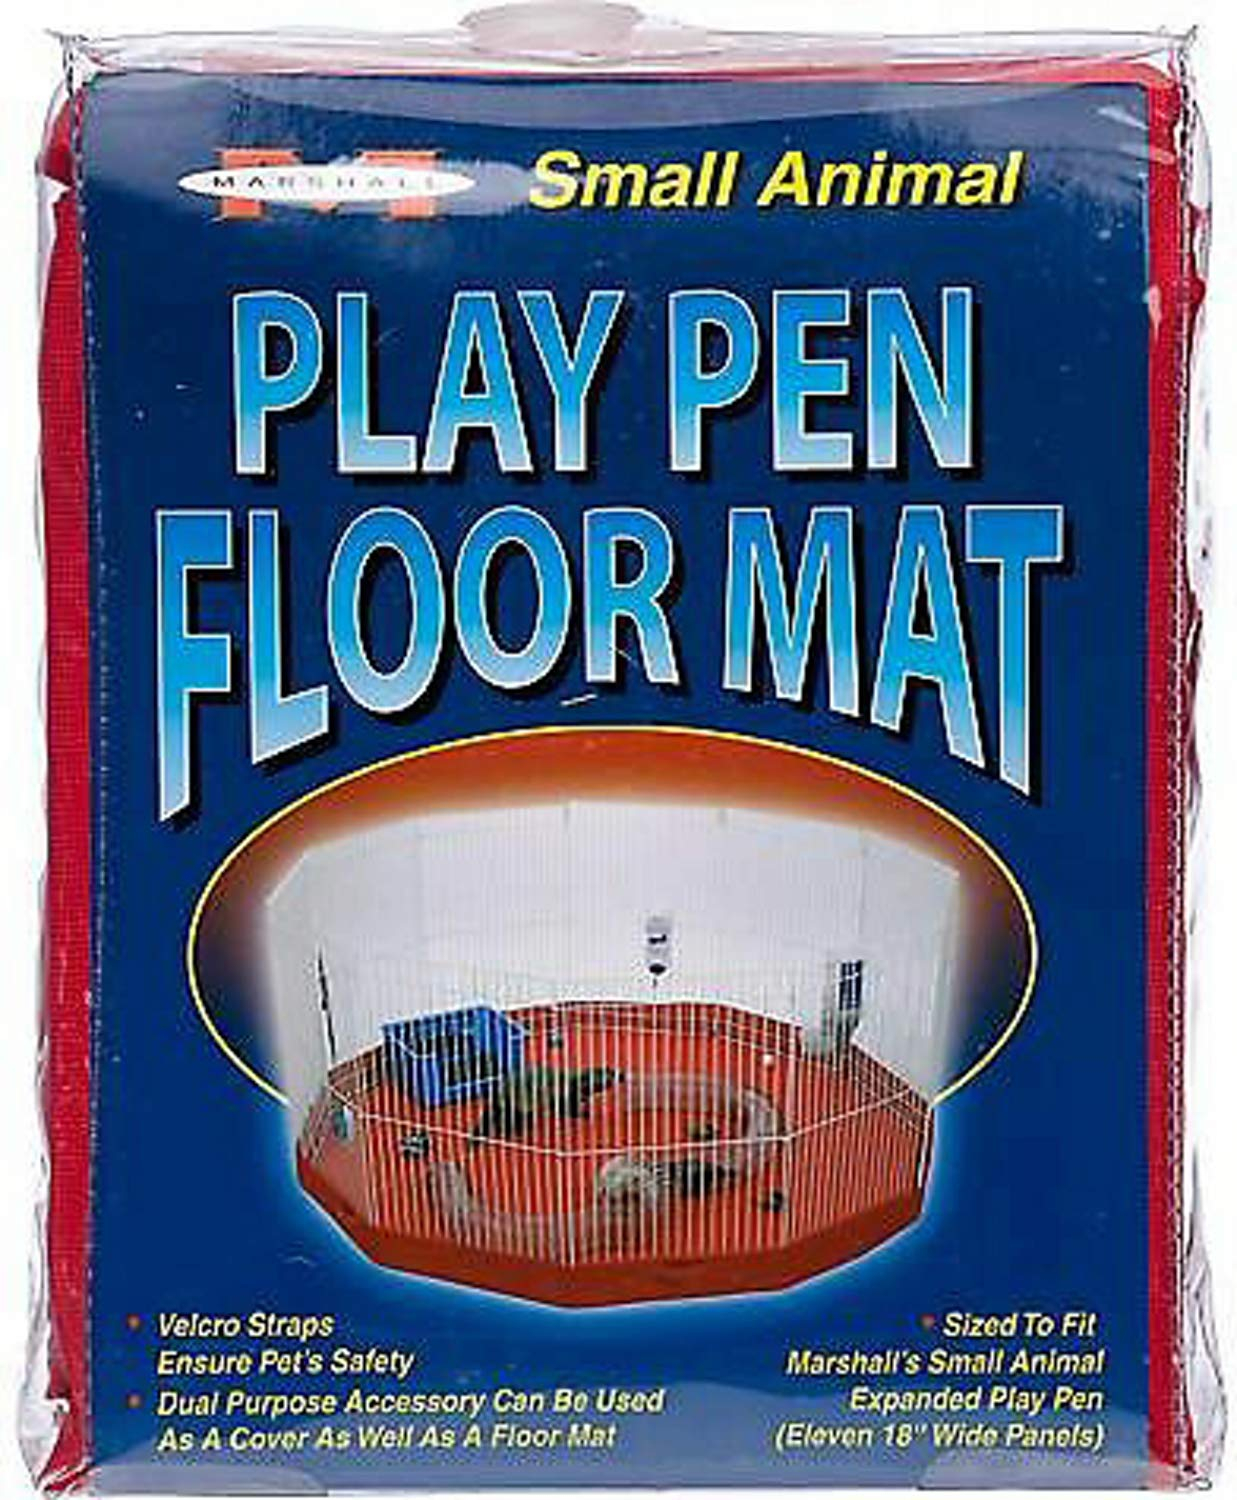 Marshall Mat/Cover for Small Animal Play Pens, Deluxe, 11 Panel, 2 Pack by Marshall